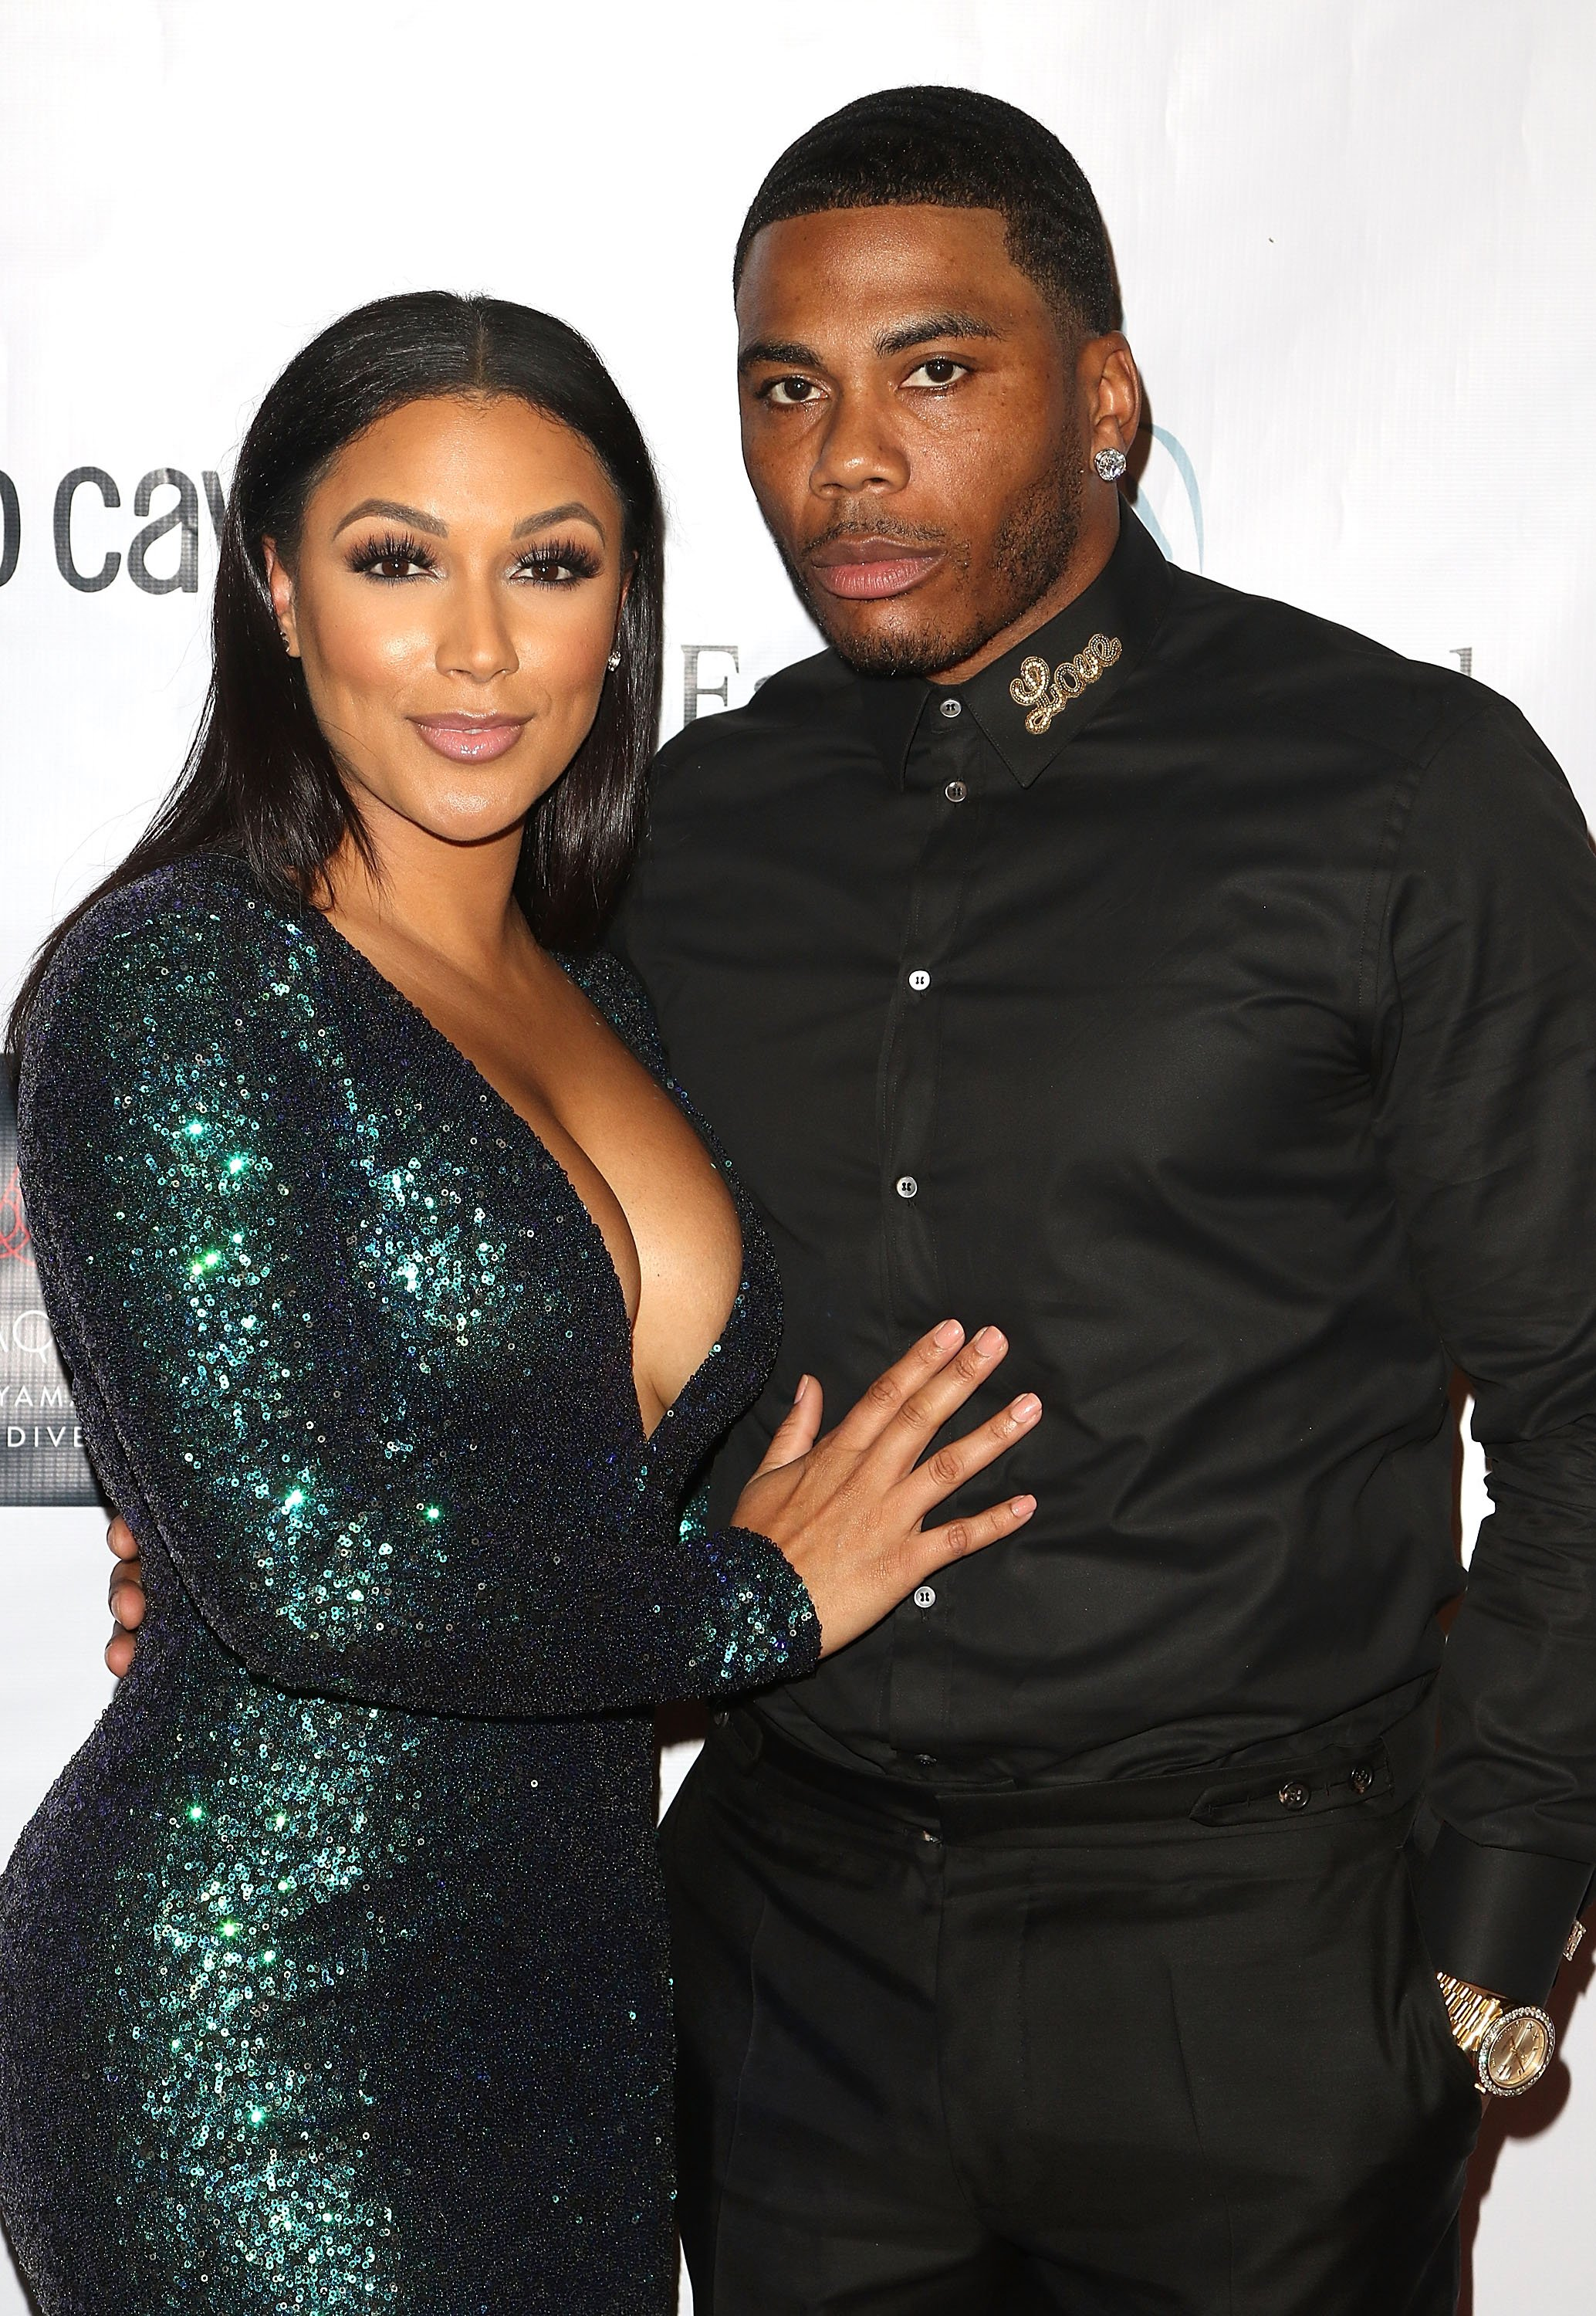 Shantel Jackson and Nelly at the 7th Annual Face Forward Gala on September 24, 2016, in Los Angeles, California.   Photo: Getty Images